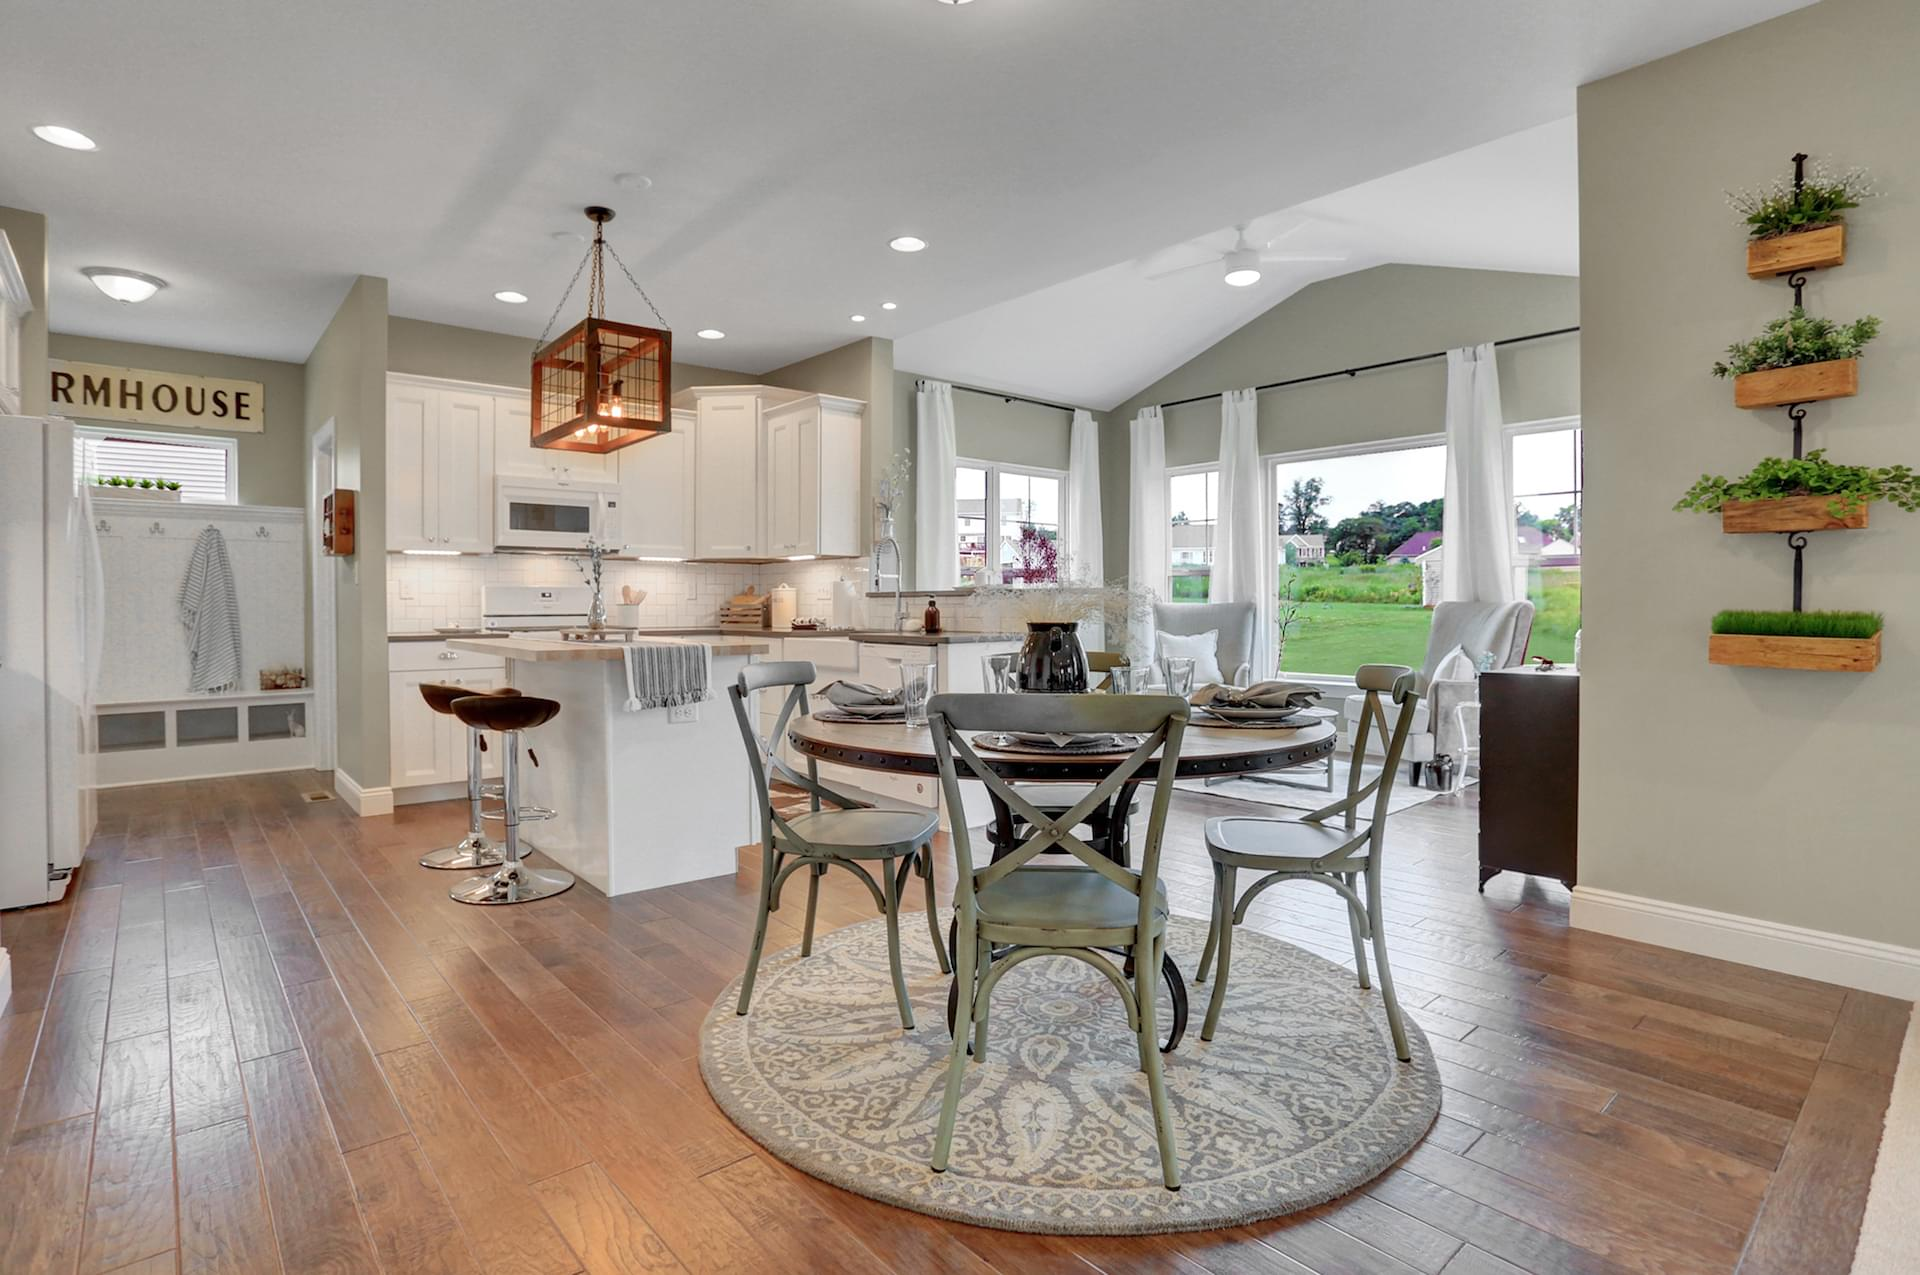 4br New Home in East Berlin, PA